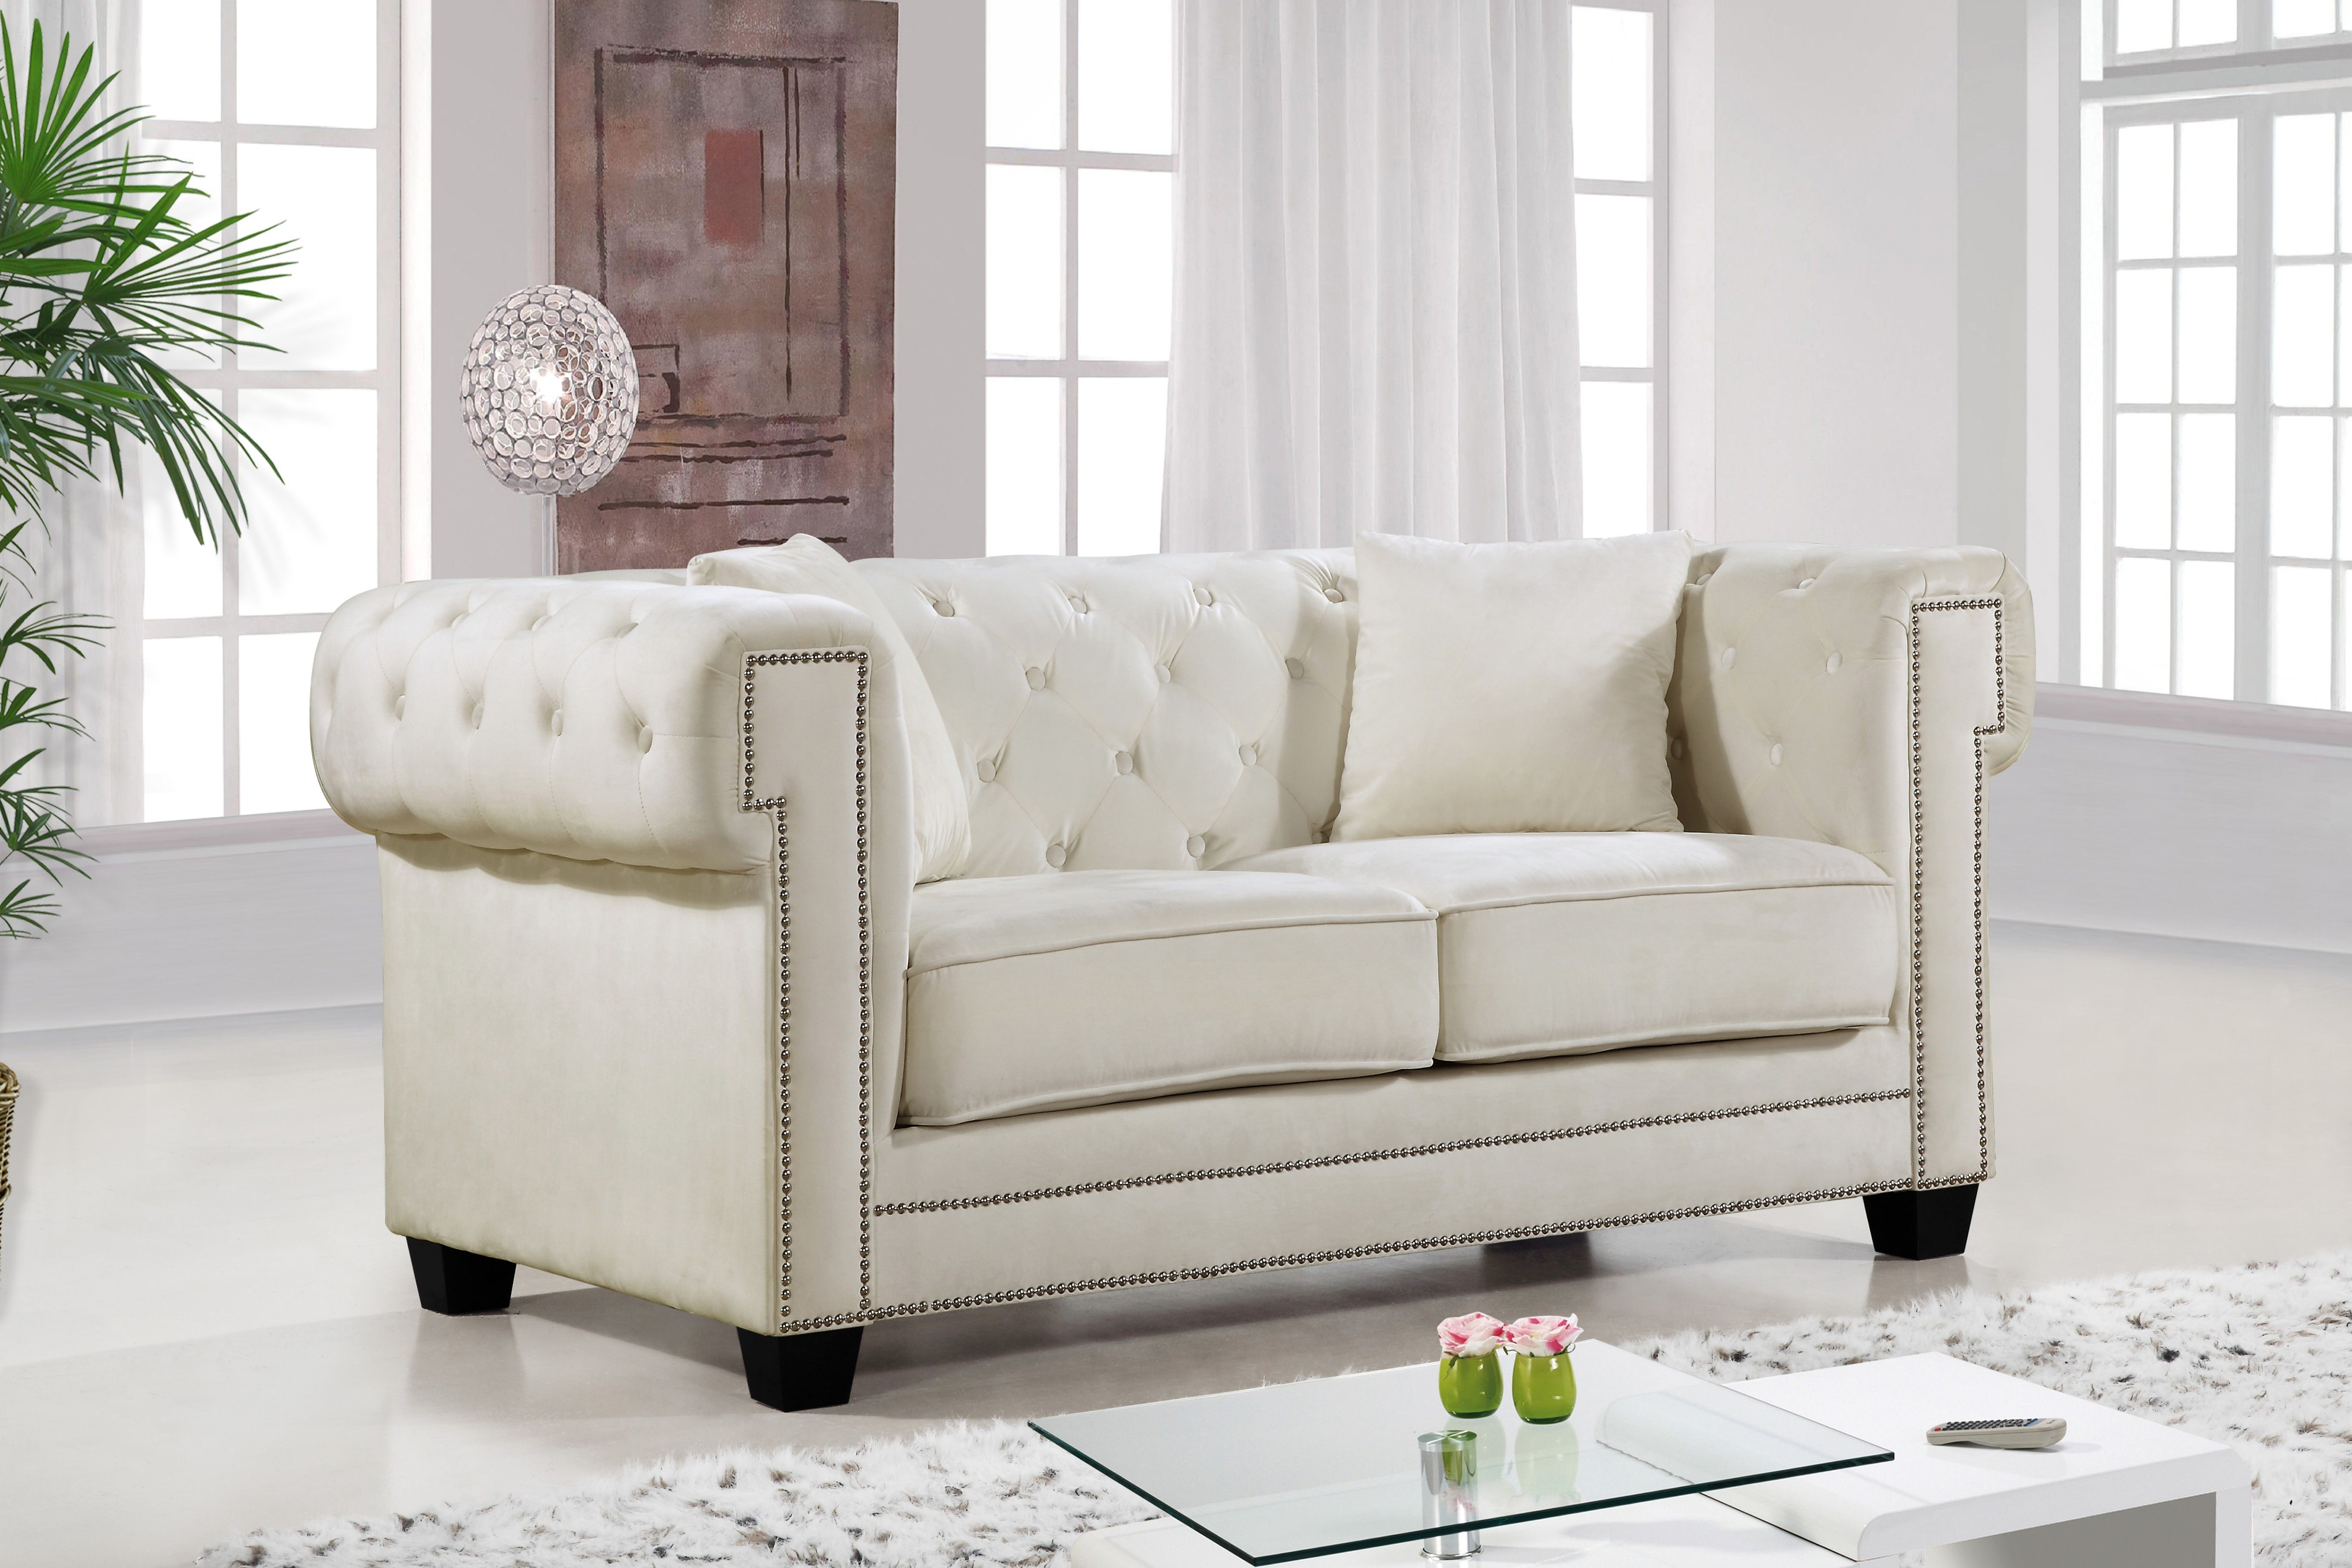 Charmant MERIDIAN FURNITURE   The Bowery Love Seat Features Beautifully Designed  Tufted Velvet Upholstery With Custom Wood